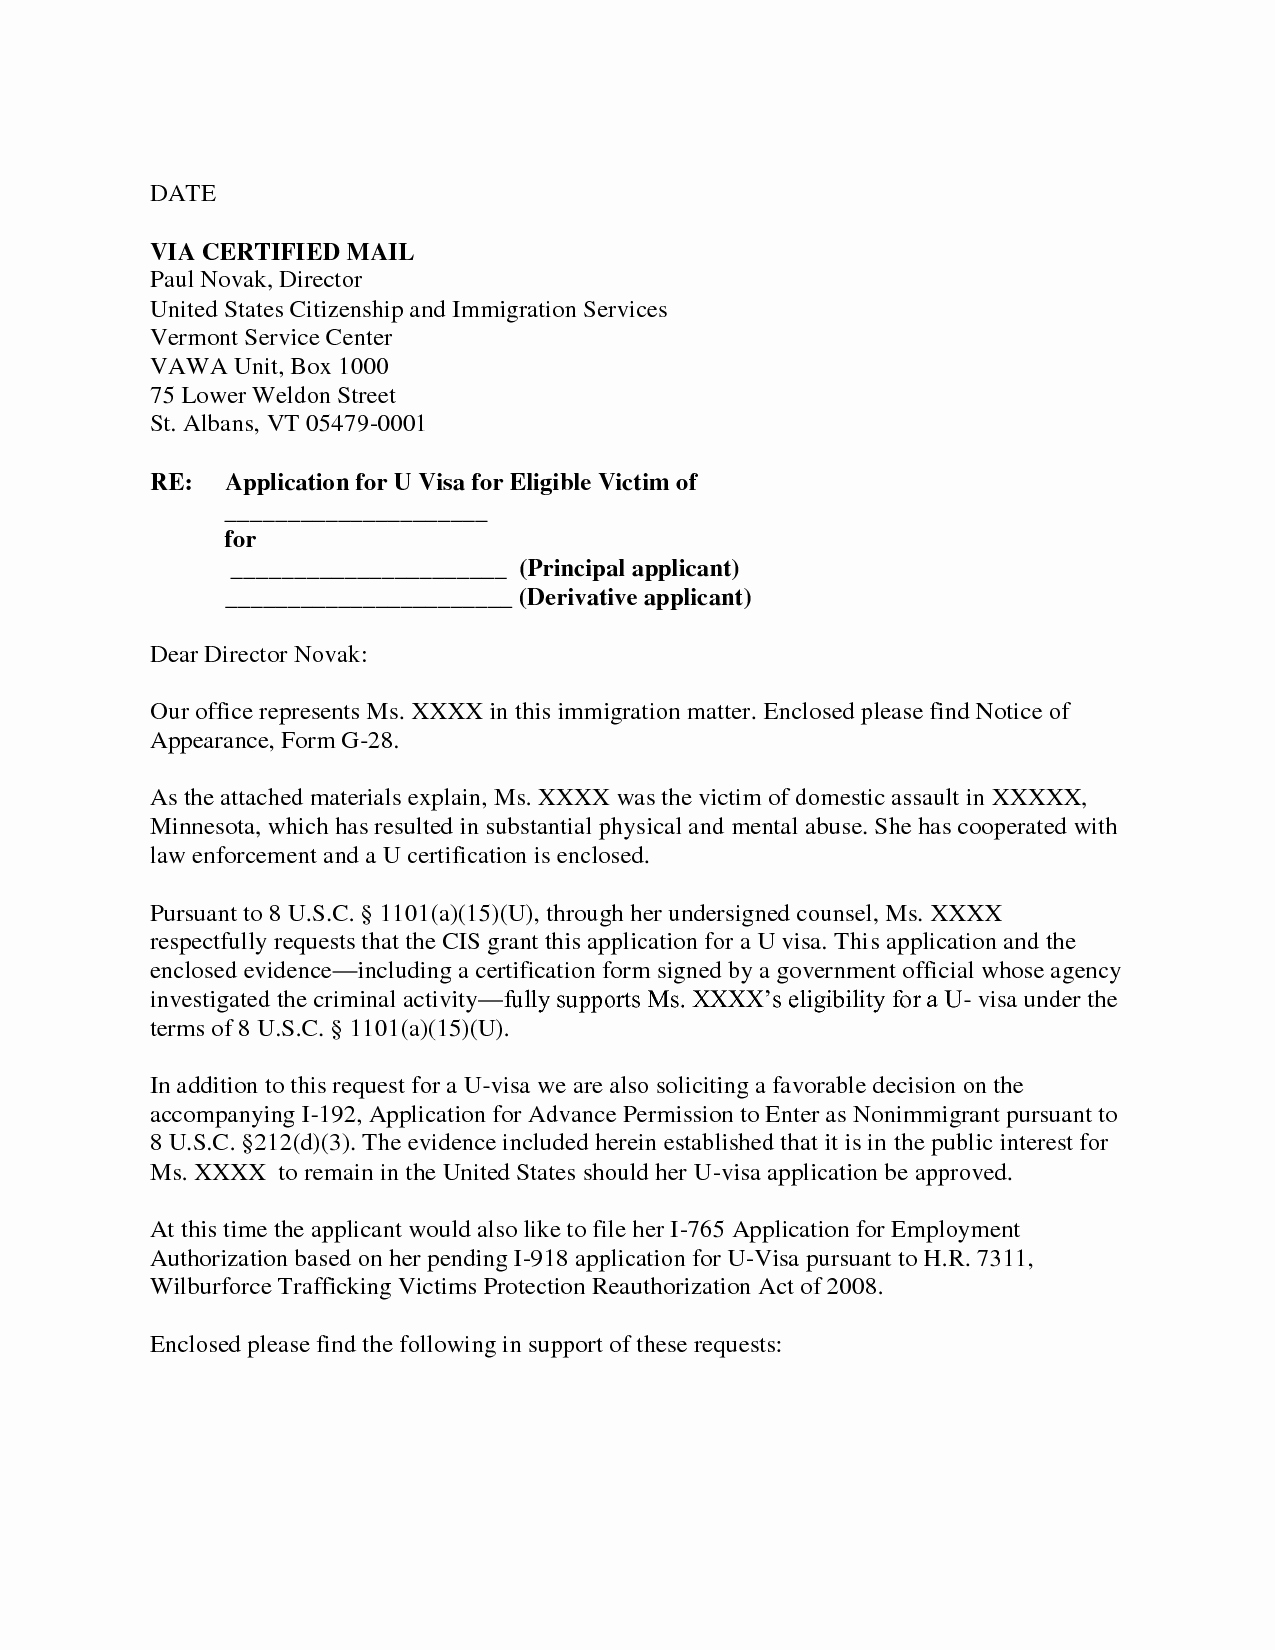 Niw Recommendation Letter Sample Unique Immigration Waiver Letter Sample Hardship Letter for